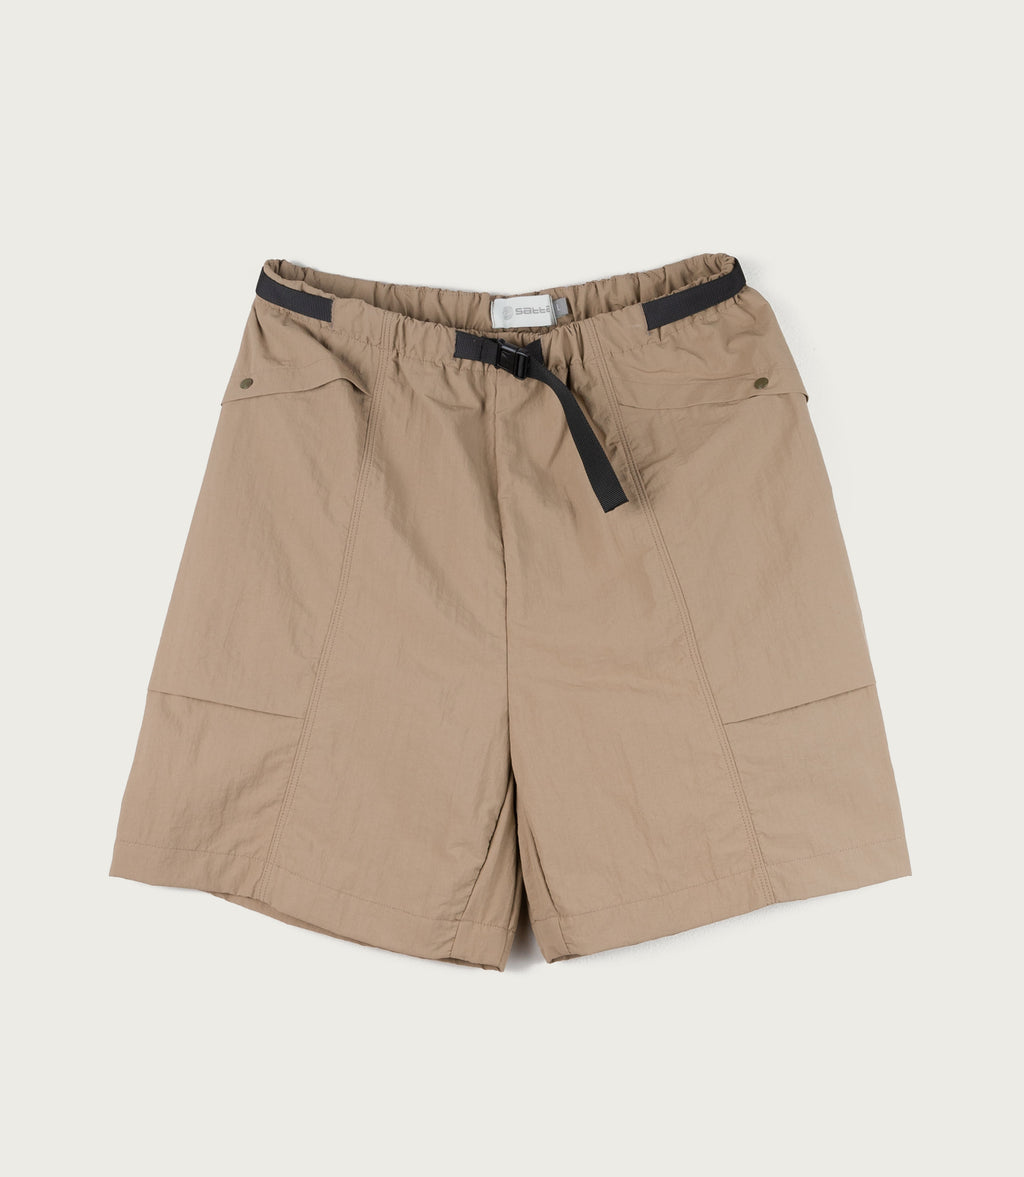 Satta Rambler Shorts - Dusty Brown | SATTA